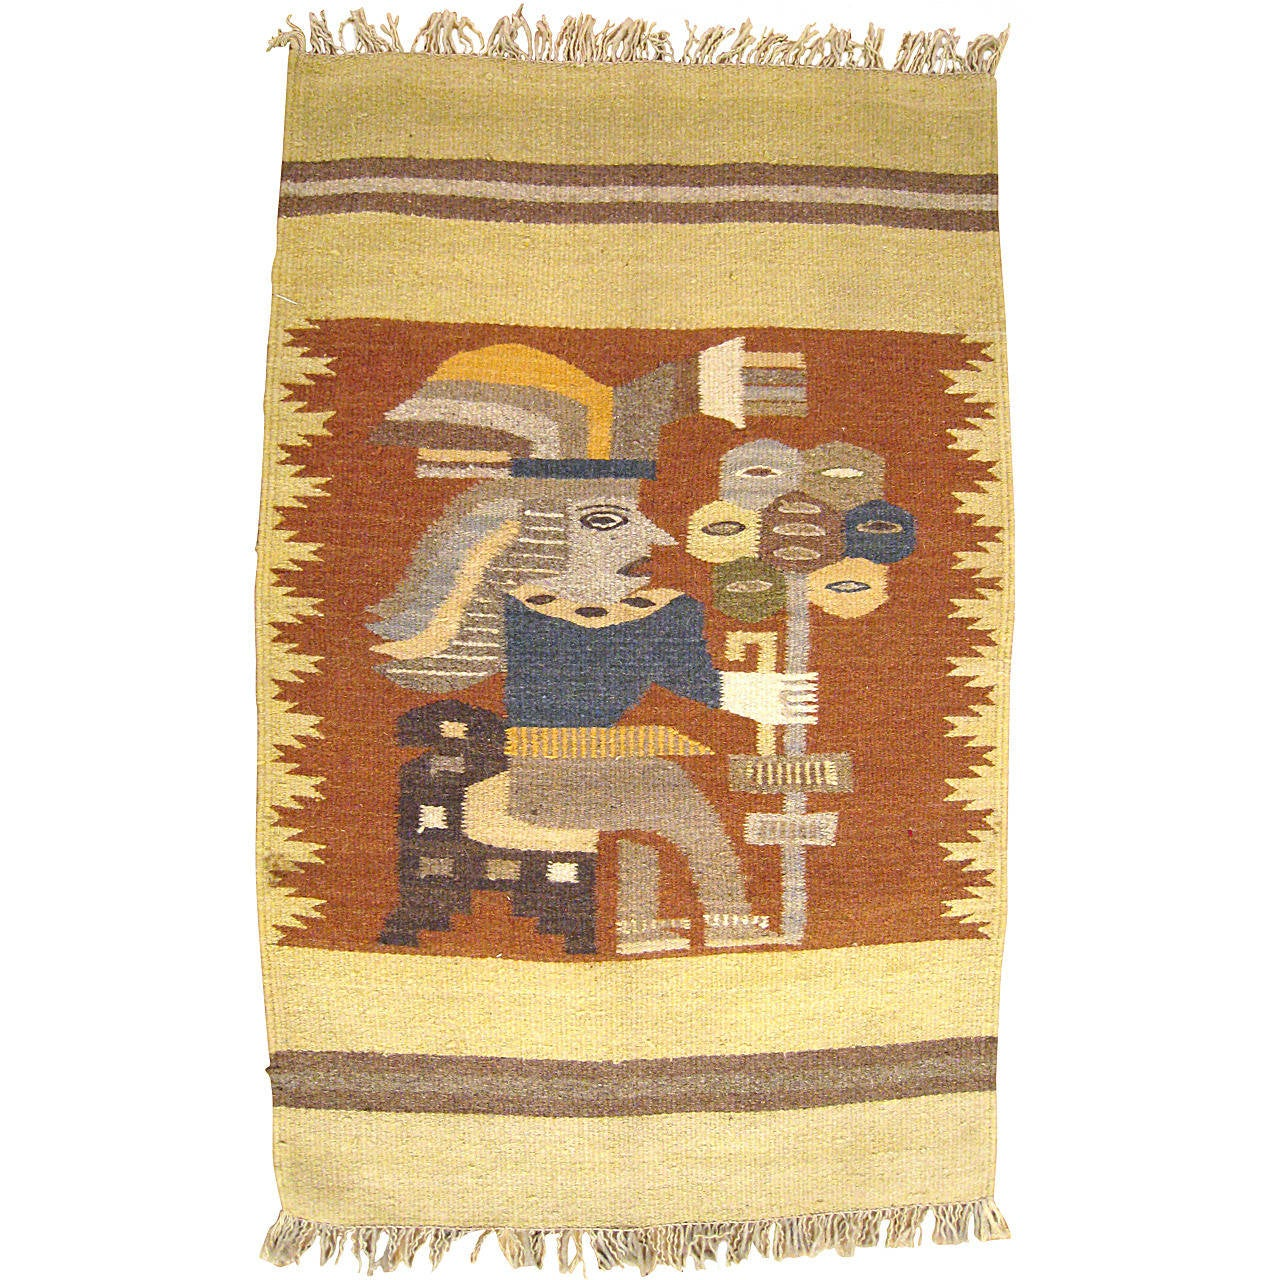 Mexican Rug Images: Vintage Mexican Zapotec Pictorial Rug